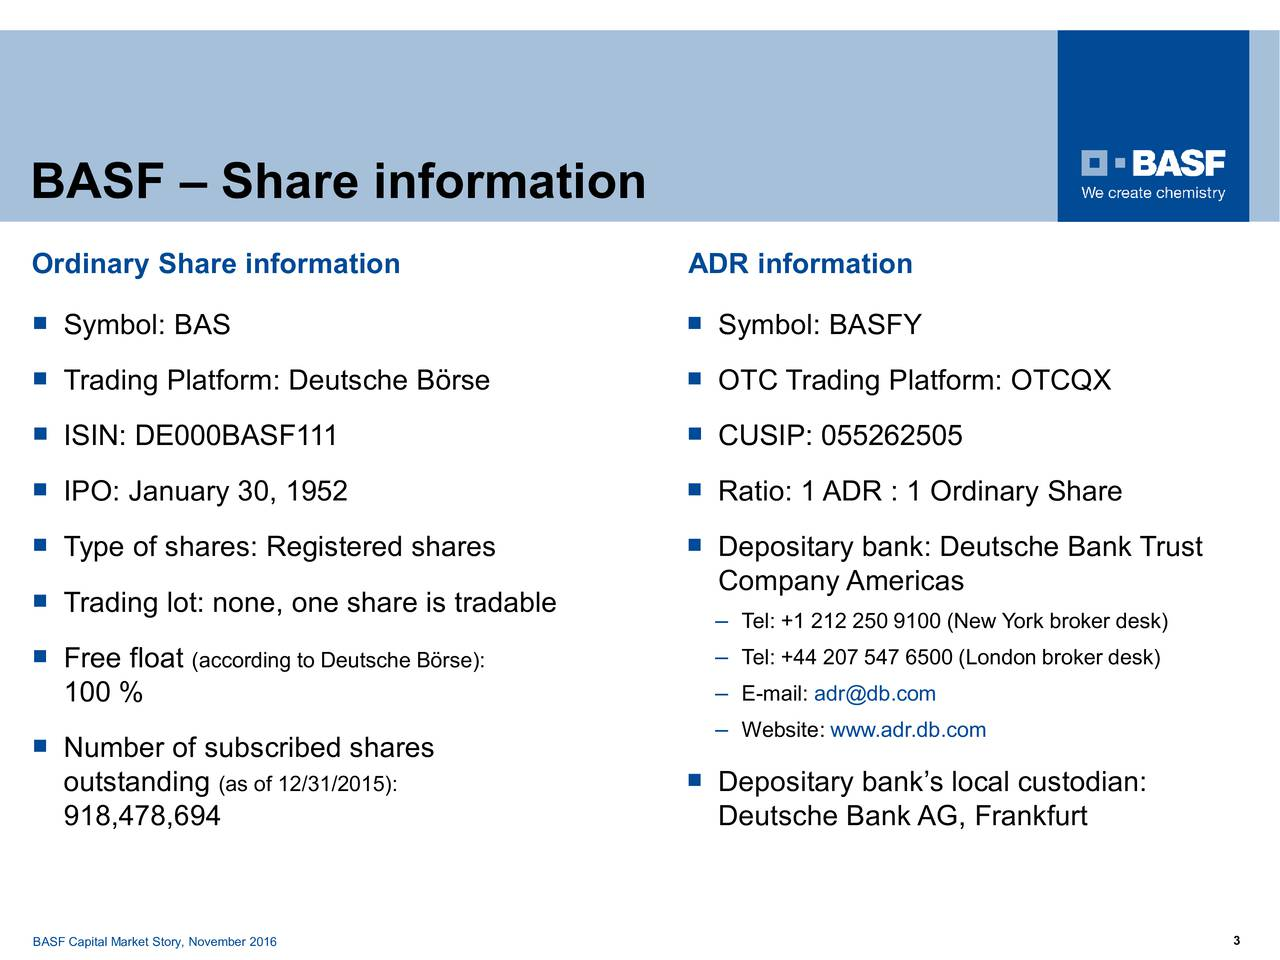 BASF  Share information Ordinary Share information ADR information Symbol: BAS  Symbol: BASFY Trading Platform: Deutsche Brse  OTC Trading Platform: OTCQX ISIN: DE000BASF111  CUSIP: 055262505 IPO: January 30, 1952  Ratio: 1 ADR : 1 Ordinary Share Type of shares: Registered shares  Depositary bank: Deutsche Bank Trust Company Americas Trading lot: none, one share is tradable Tel: +1 212 250 9100 (New York broker desk) Free float(according to Deutsche Brse):  Tel: +44 207 547 6500 (London broker desk) 100 %  E-mail: adr@db.com Number of subscribed shares  Website: www.adr.db.com outstanding (as of 12/31/2015):  Depositary banks local custodian: 918,478,694 Deutsche Bank AG, Frankfurt BASF Capital Market Story, November 2016 3